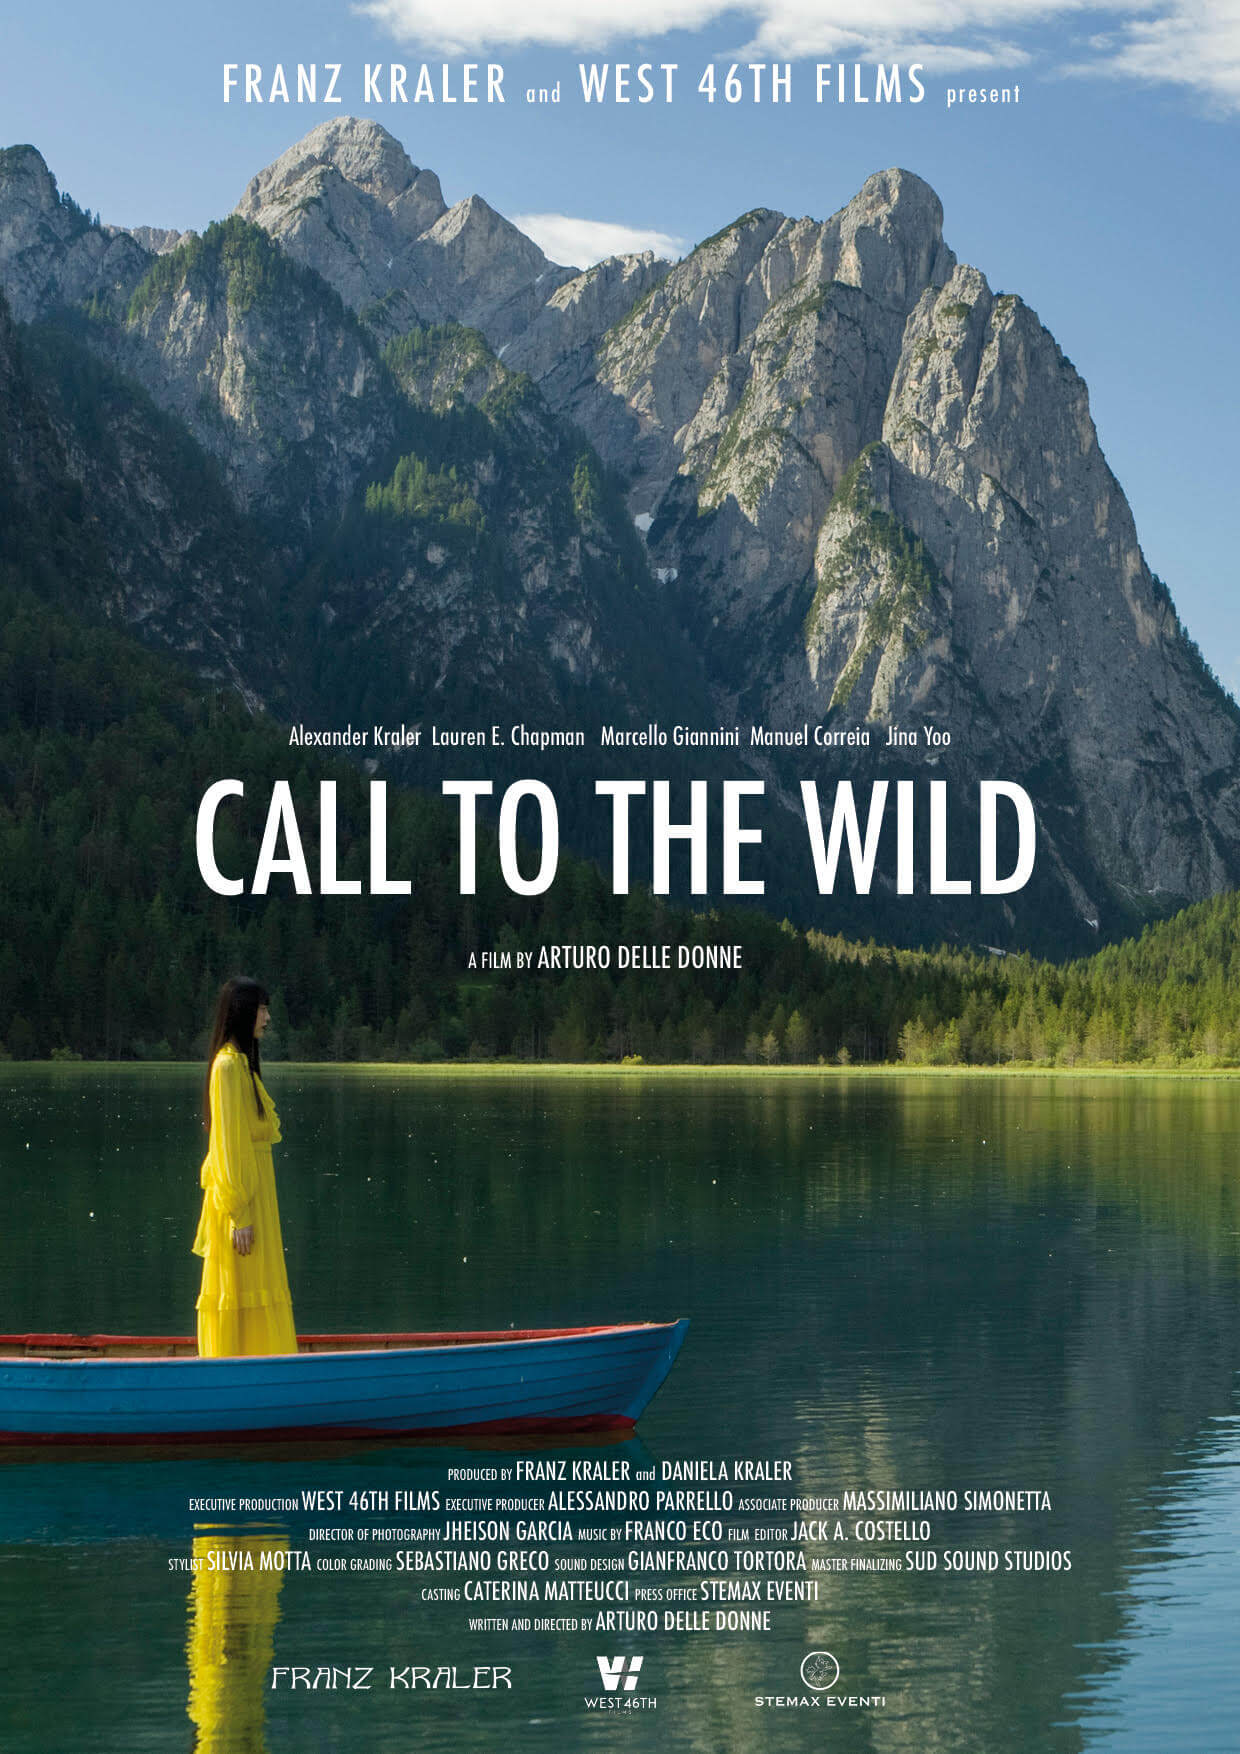 Call to the wild